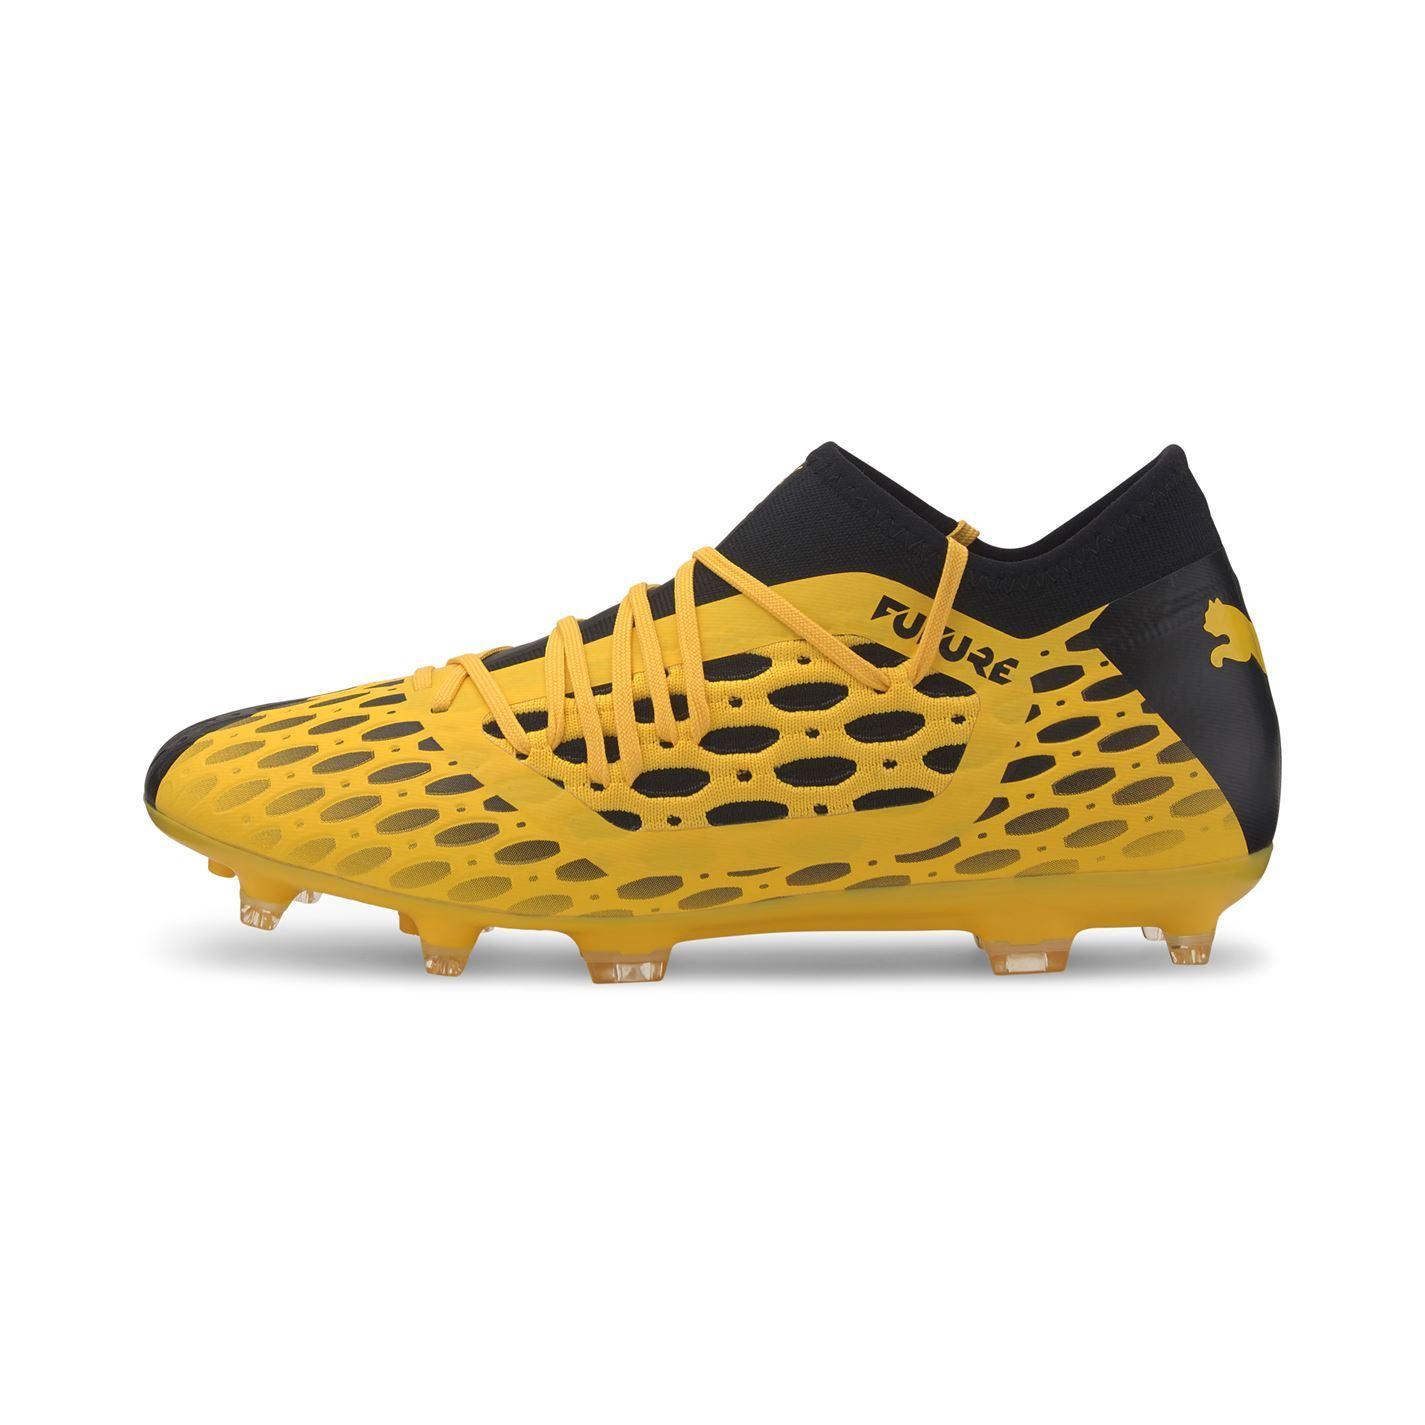 miniature 7 - Puma Future 5.3 Homme FG Firm Ground Chaussures De Football Chaussures de Foot Crampons Baskets